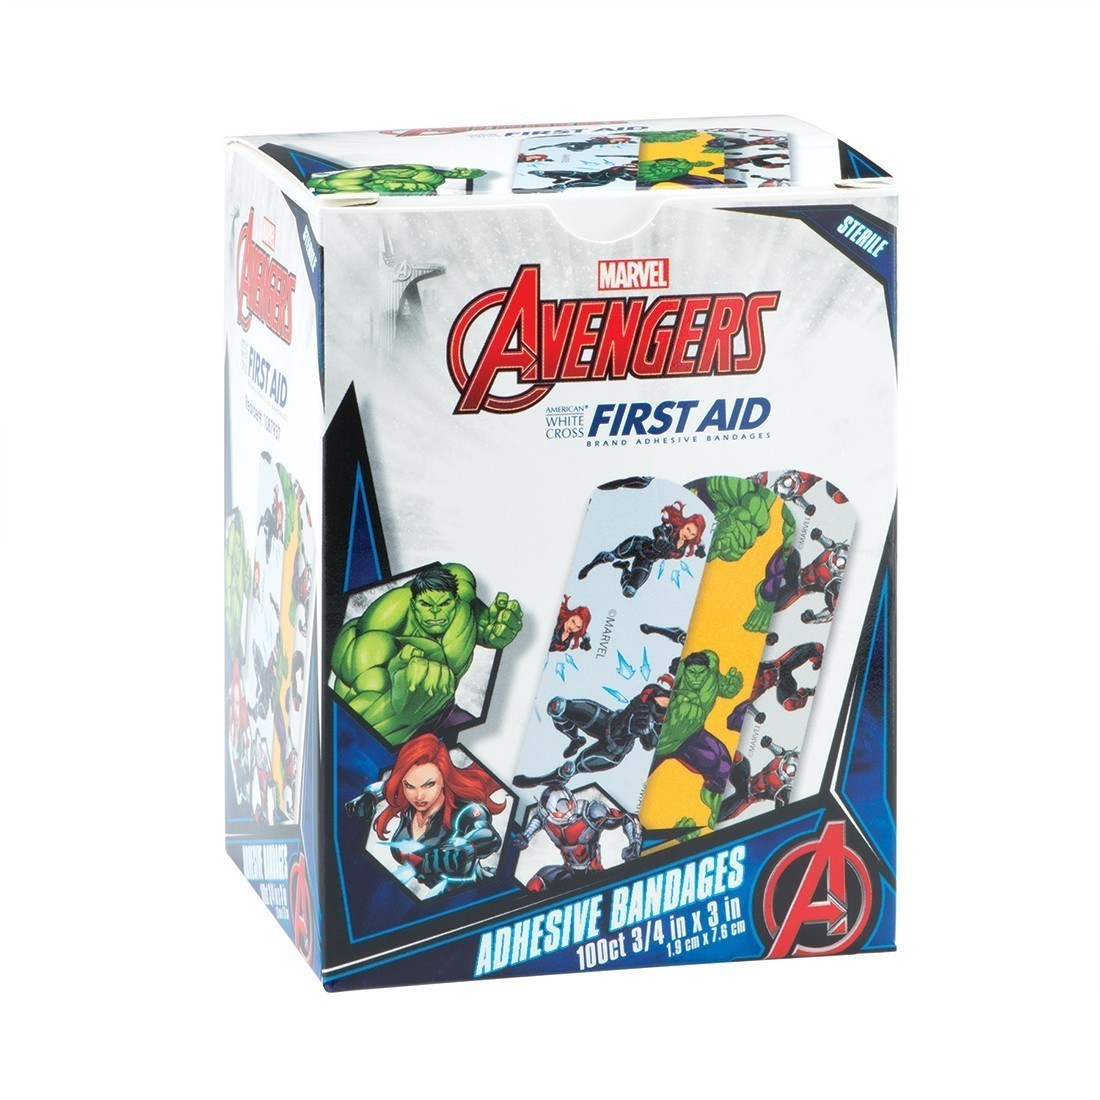 First Aid Avengers Bandages [image]